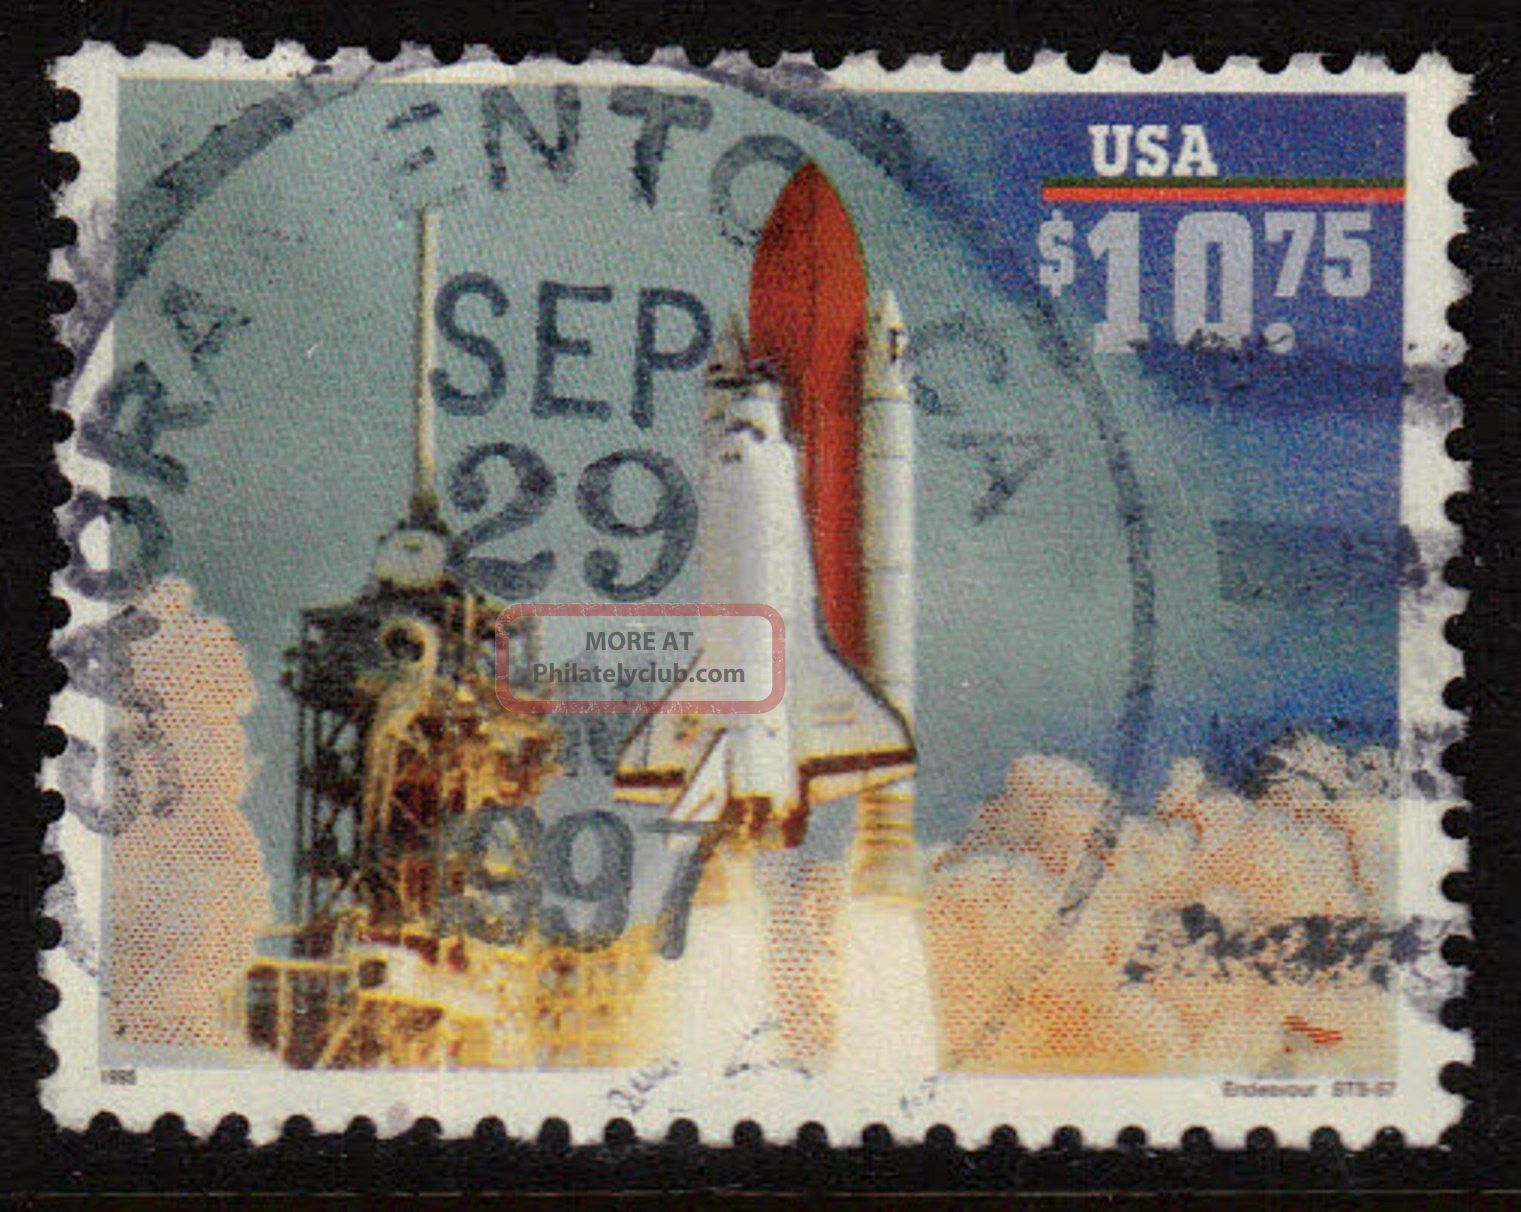 Scott 2544a Express Mail Space Shuttle Endeavor United States photo